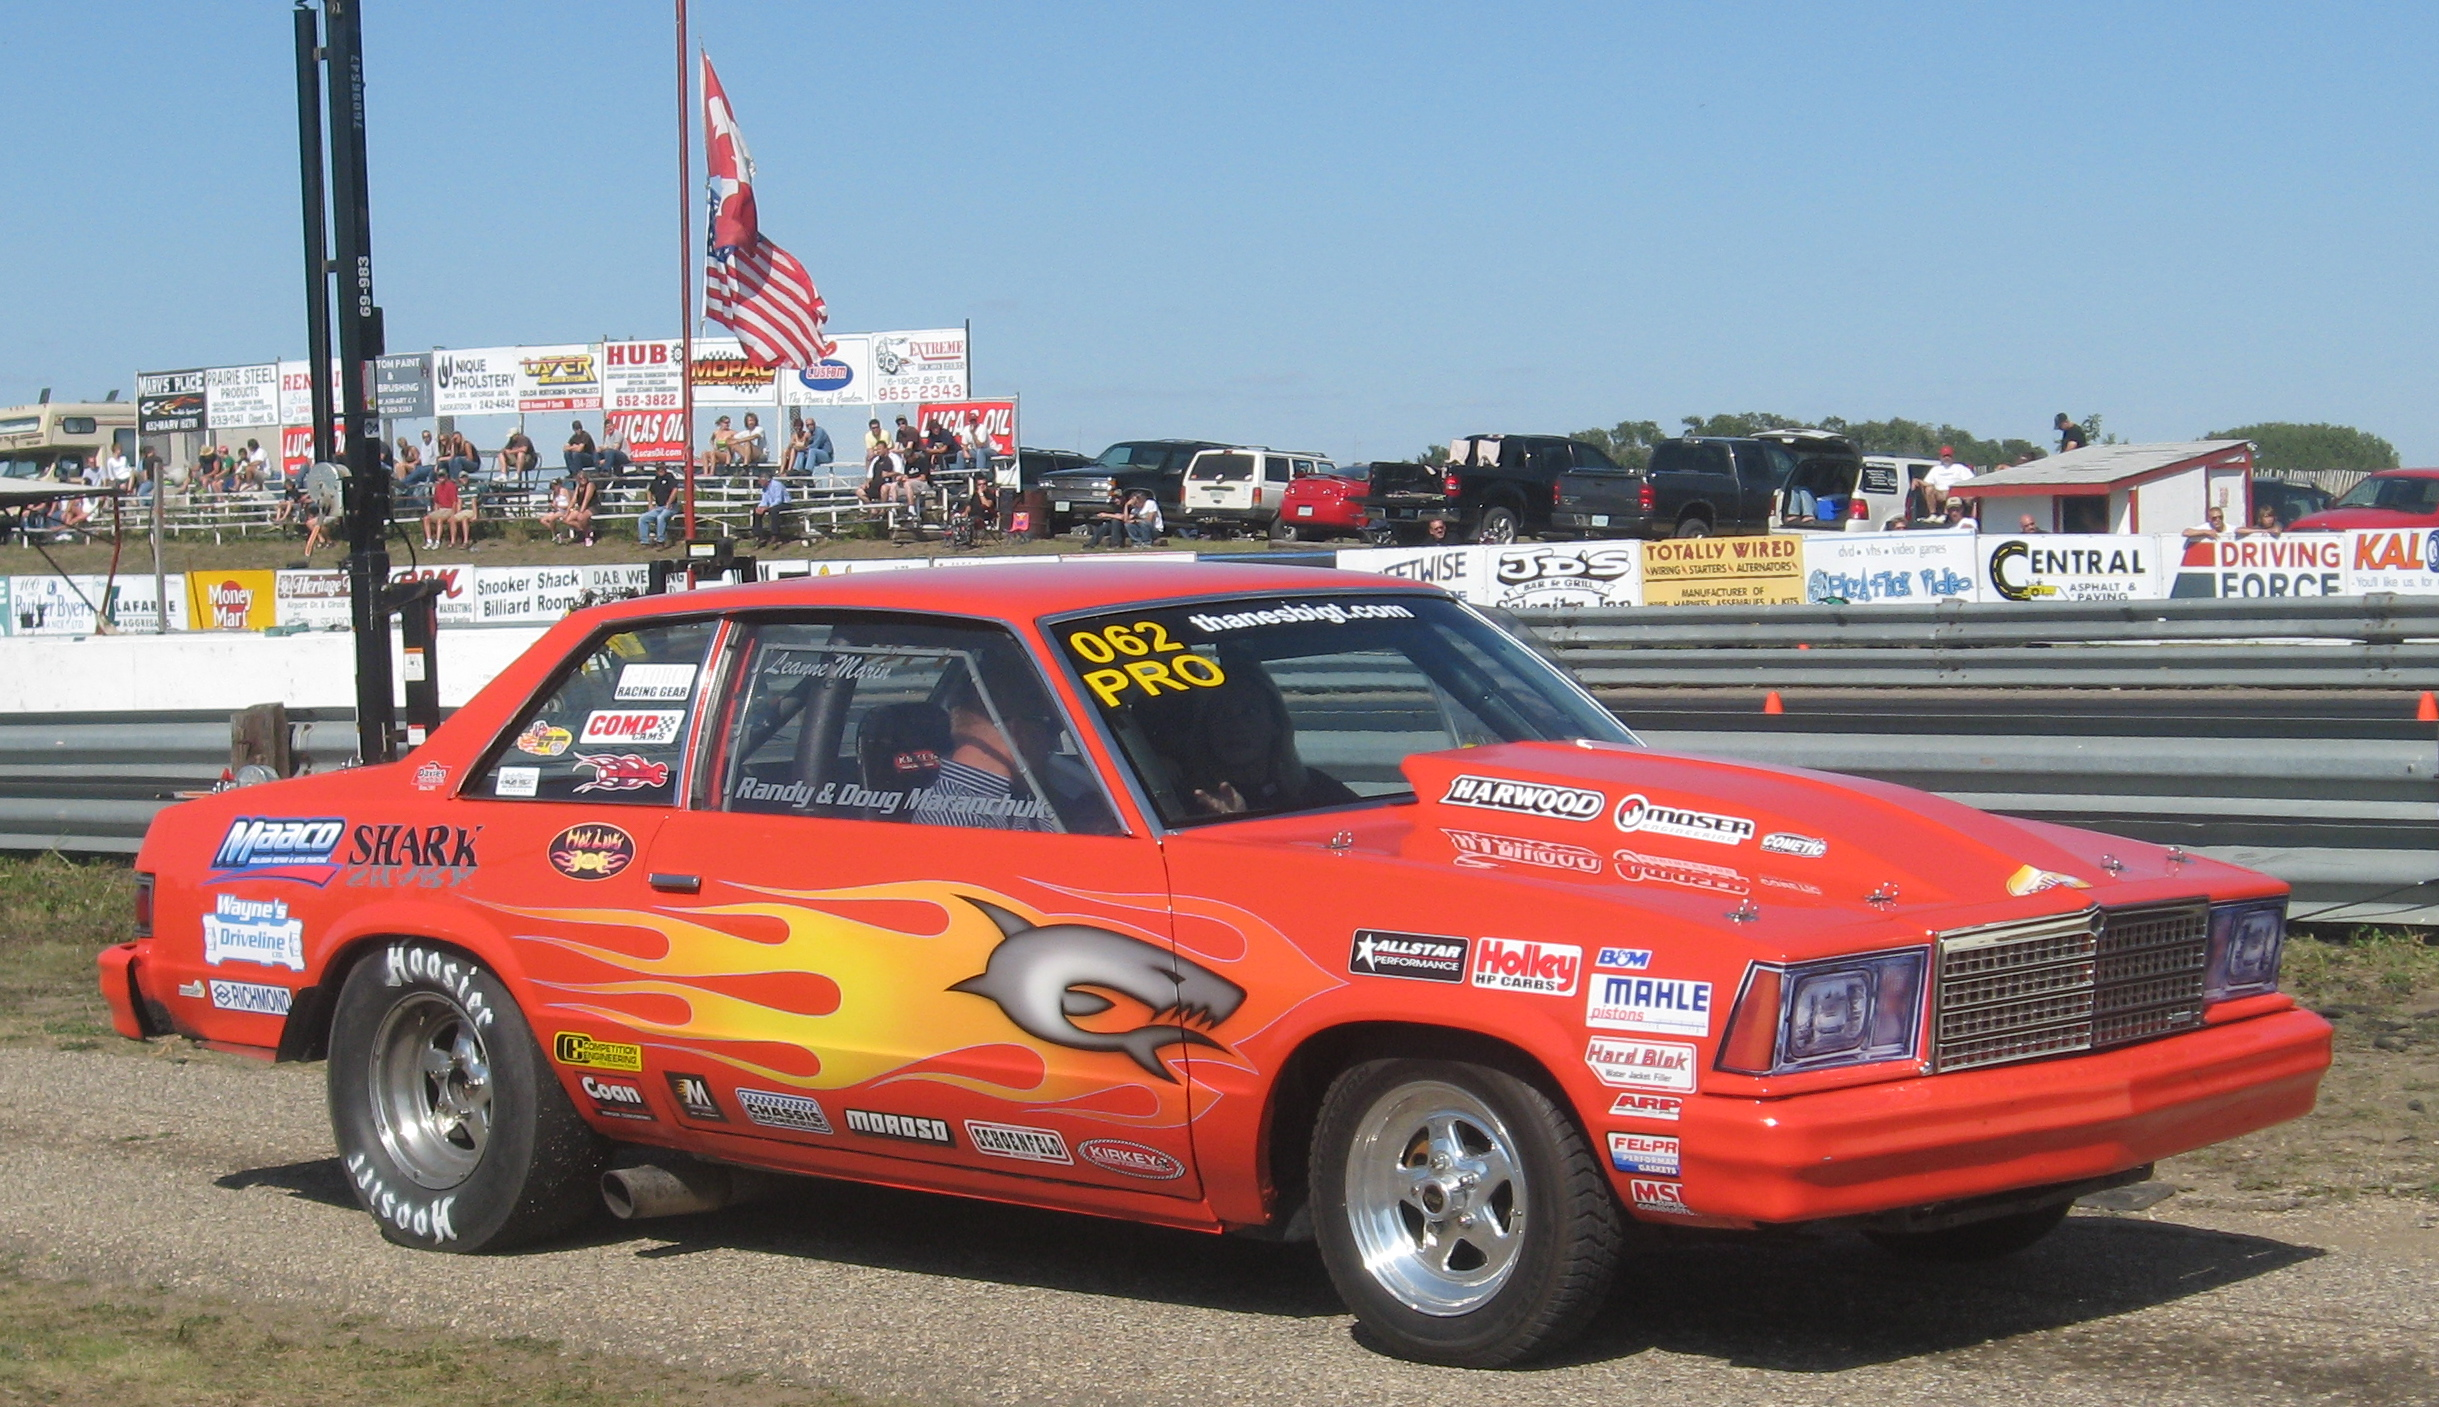 Pro Street Drag Cars For Sale